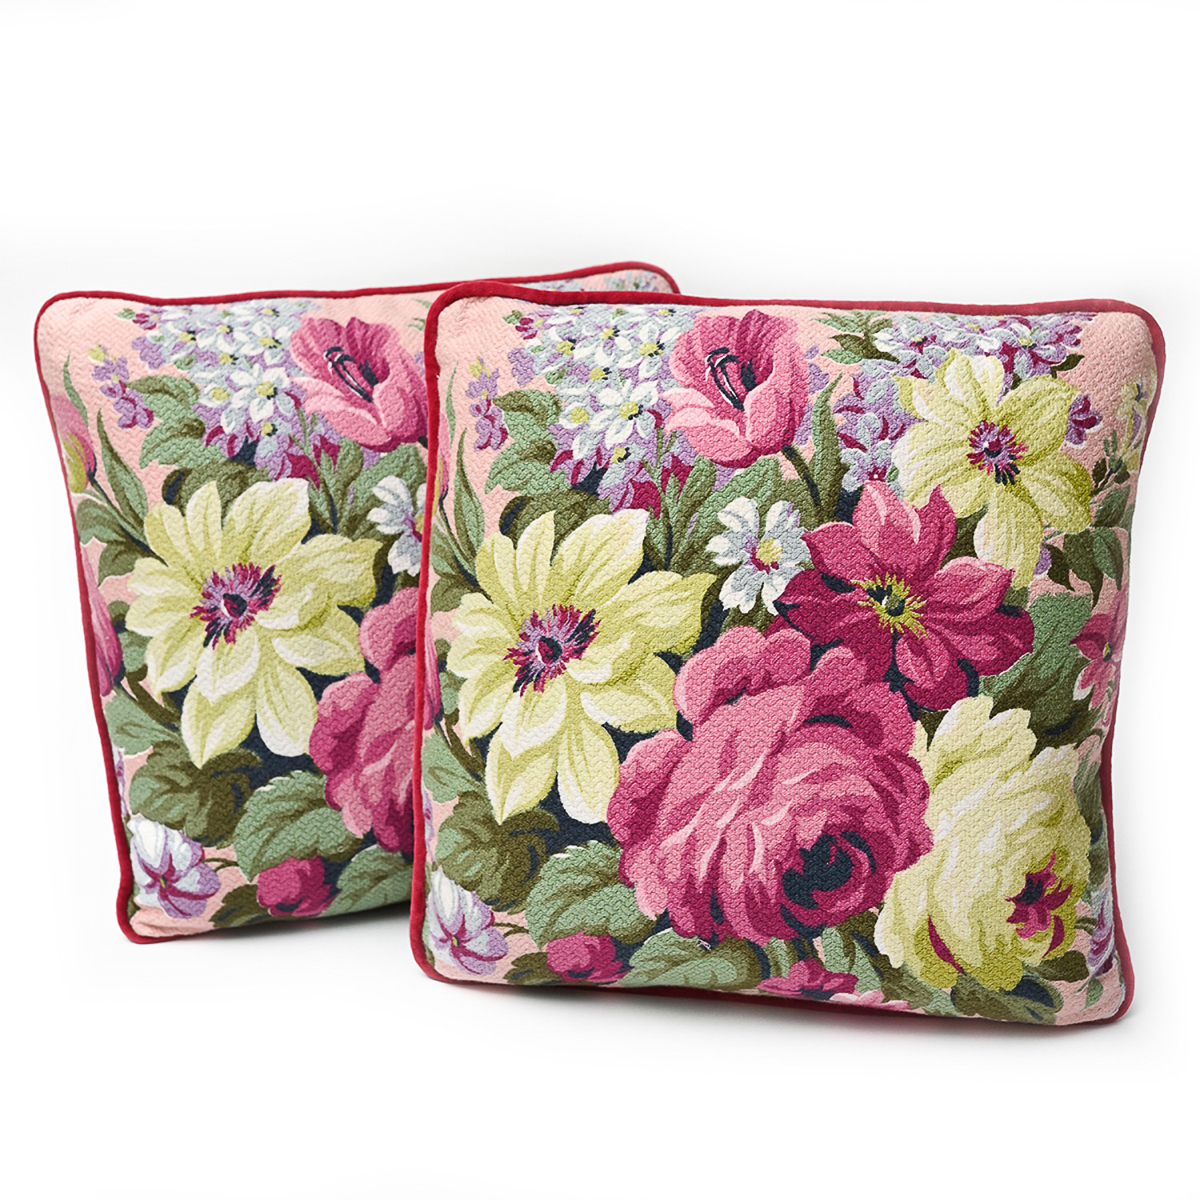 Pair Of Pillows, Floral on Ballet Pink: 18 x 18